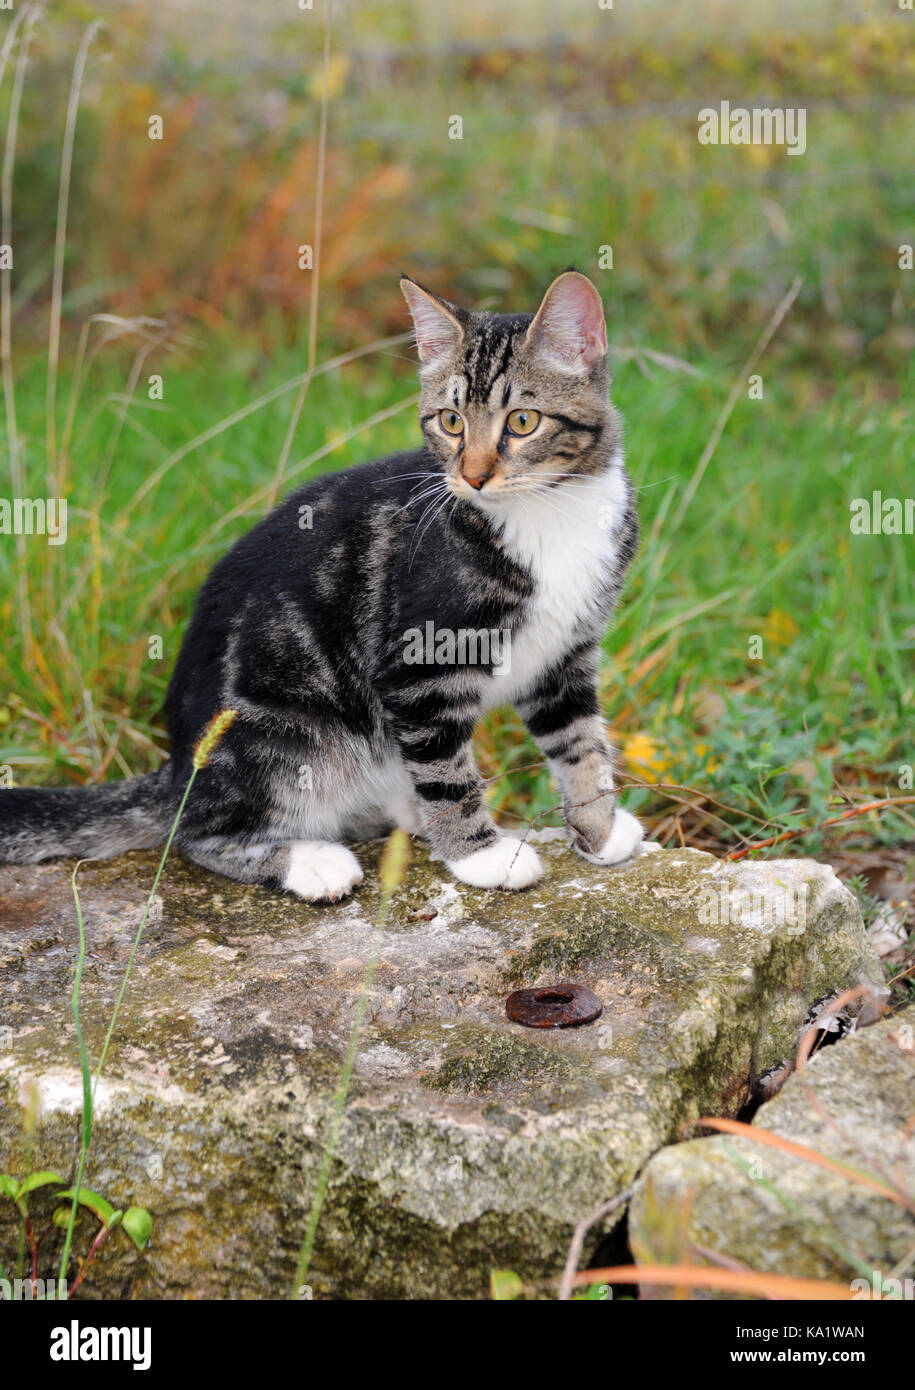 Tan And White Cat High Resolution Stock Photography And Images Alamy